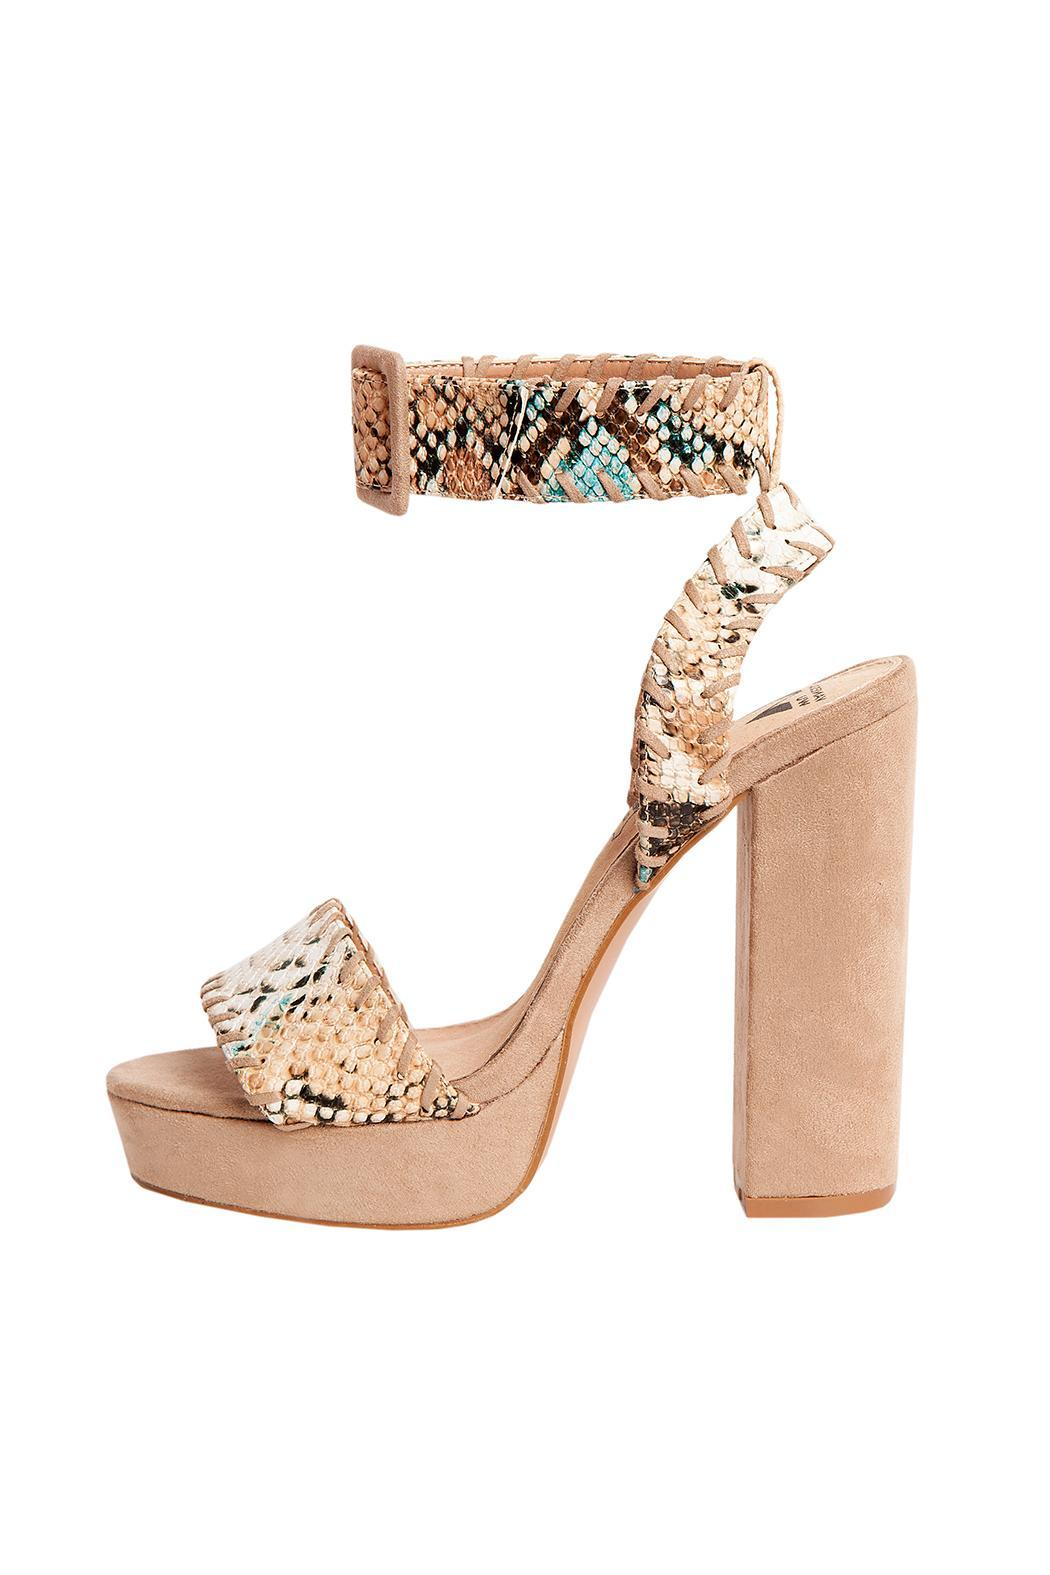 7d907c3b918b Vanessa Wu Python Printed Sandals from Netherlands by FashionFarm ...